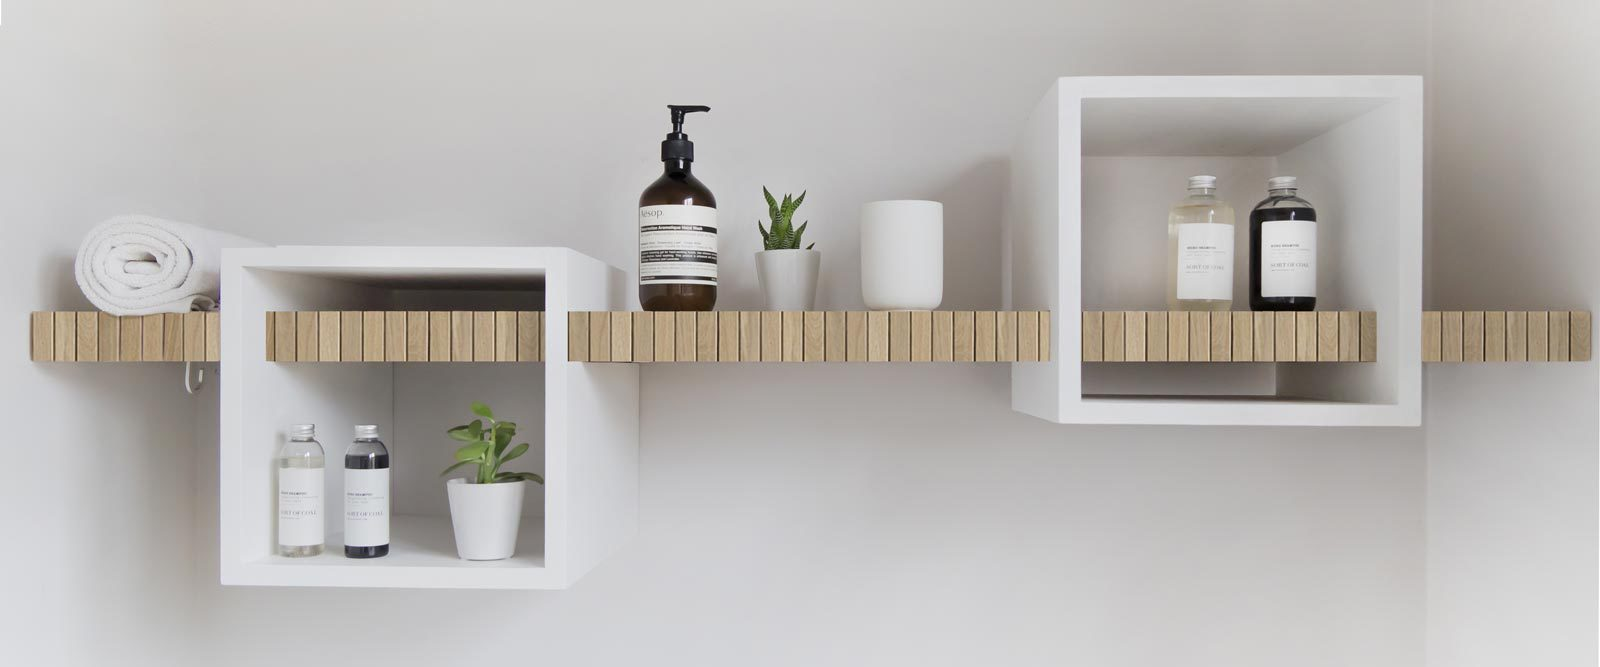 myshelf lookbook 19 oak slider